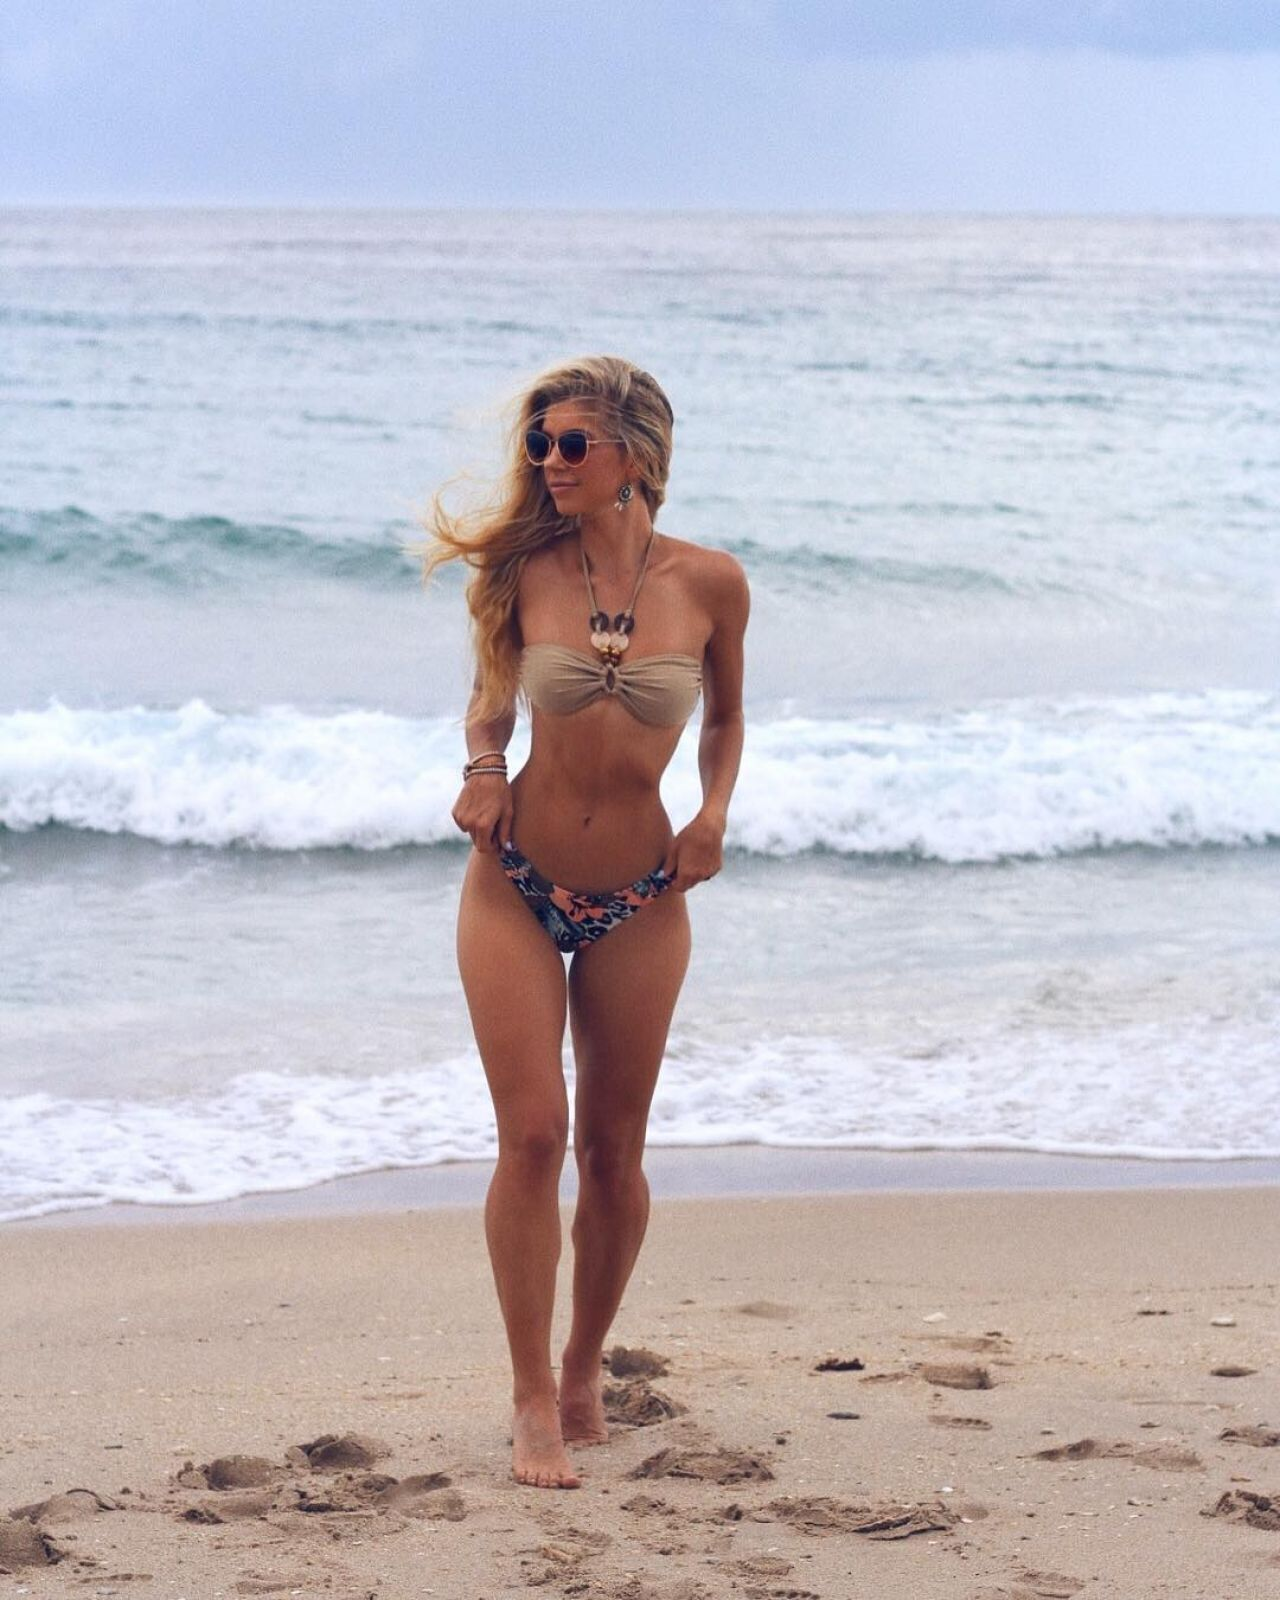 Allie DeBerry nude (75 foto and video), Tits, Bikini, Instagram, panties 2019